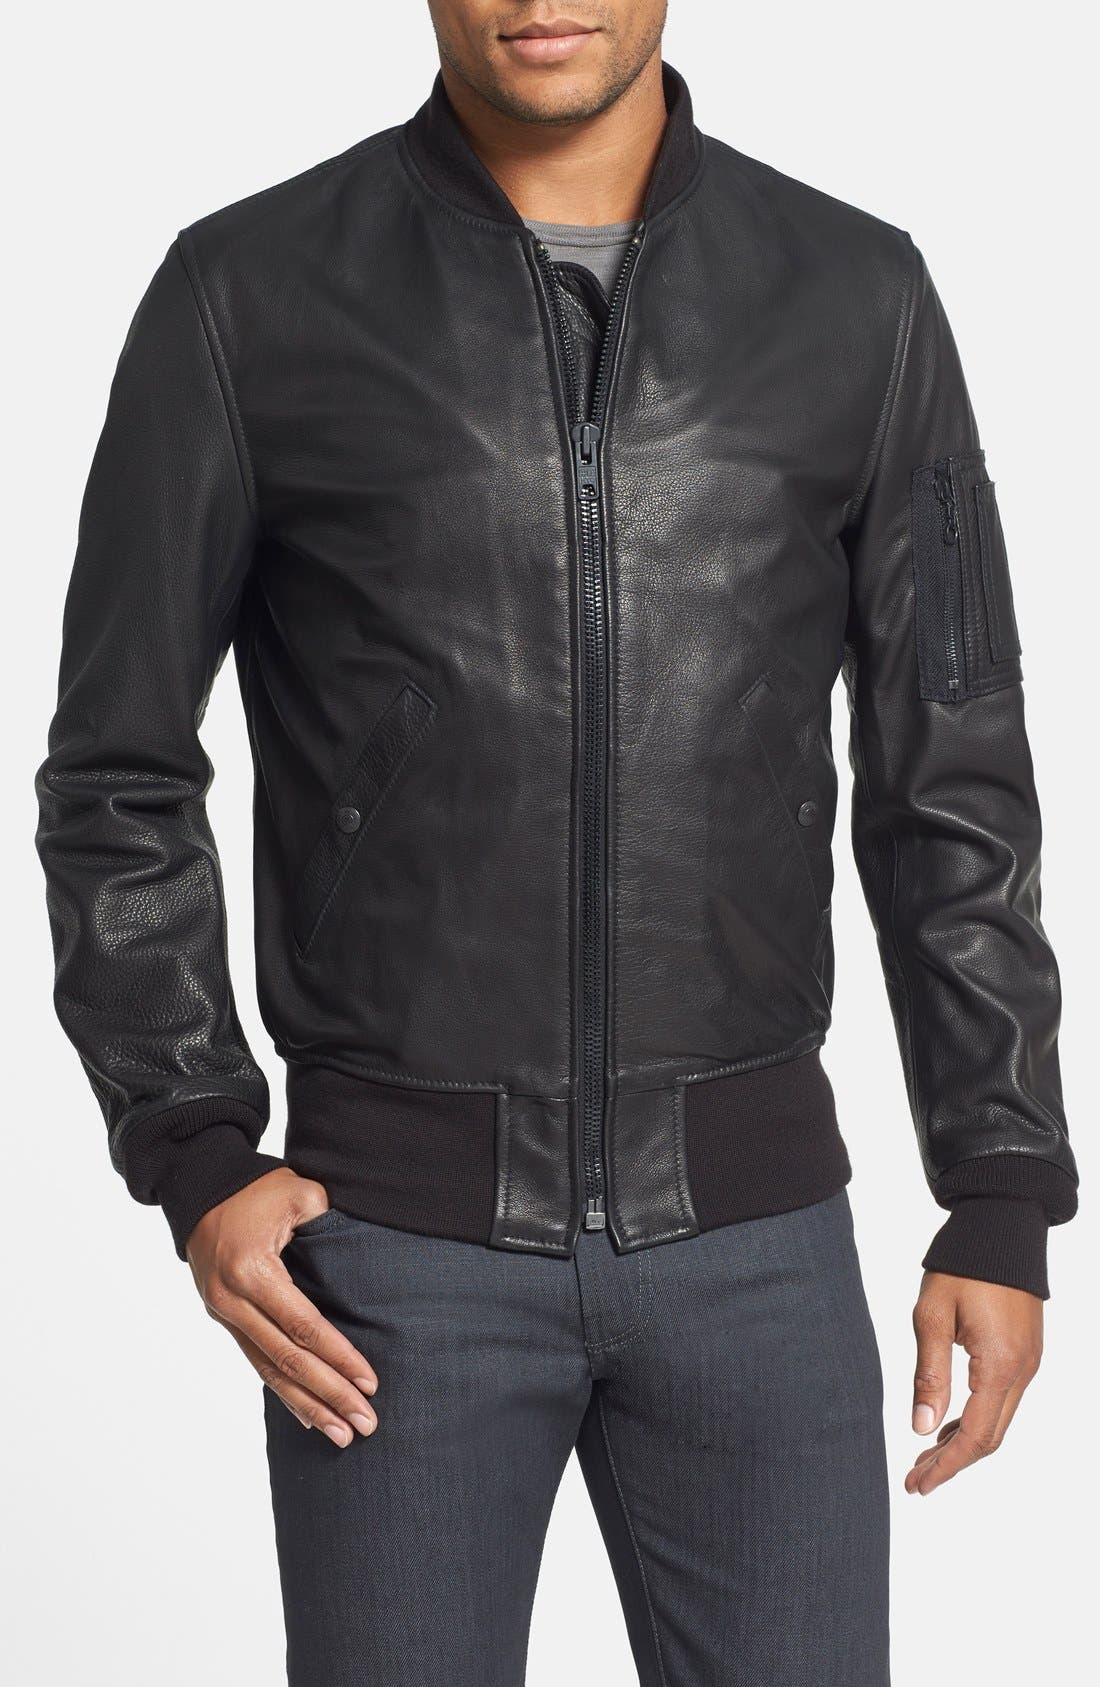 'MA-1' Slim Fit Leather Jacket,                         Main,                         color, 001